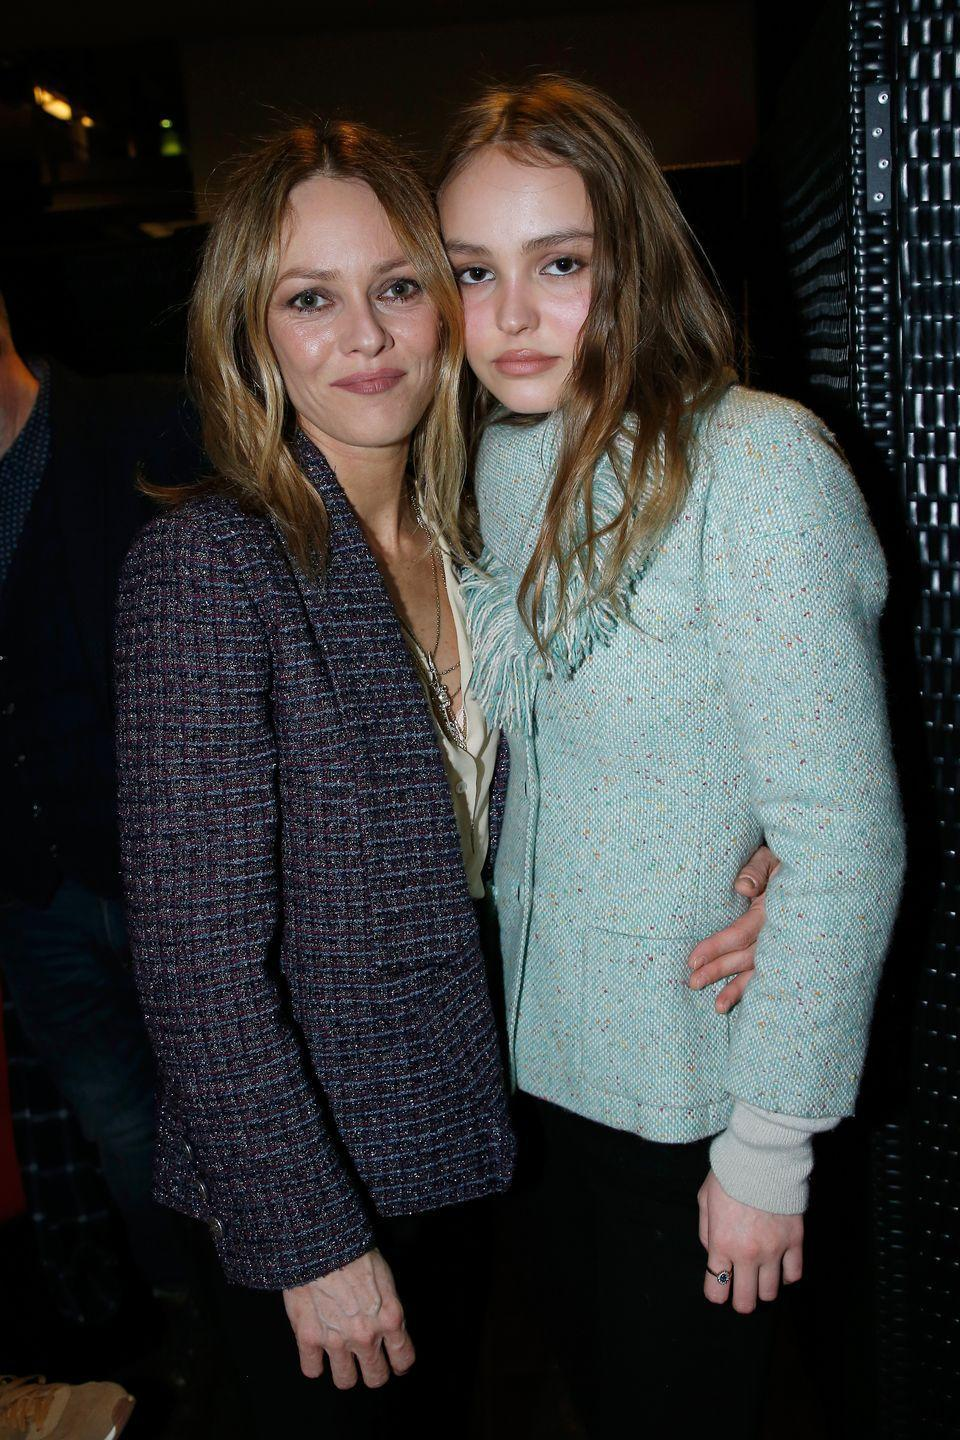 <p>Like mother, like daughter: The modeling genes run strong in this family. Vanessa Paradis and Johnny Depp's 21-year-old daughter, Lily-Rose Depp, looks exactly like her mom. The budding model and actress even followed in Paradis's footsteps as a model for Chanel. <br></p>